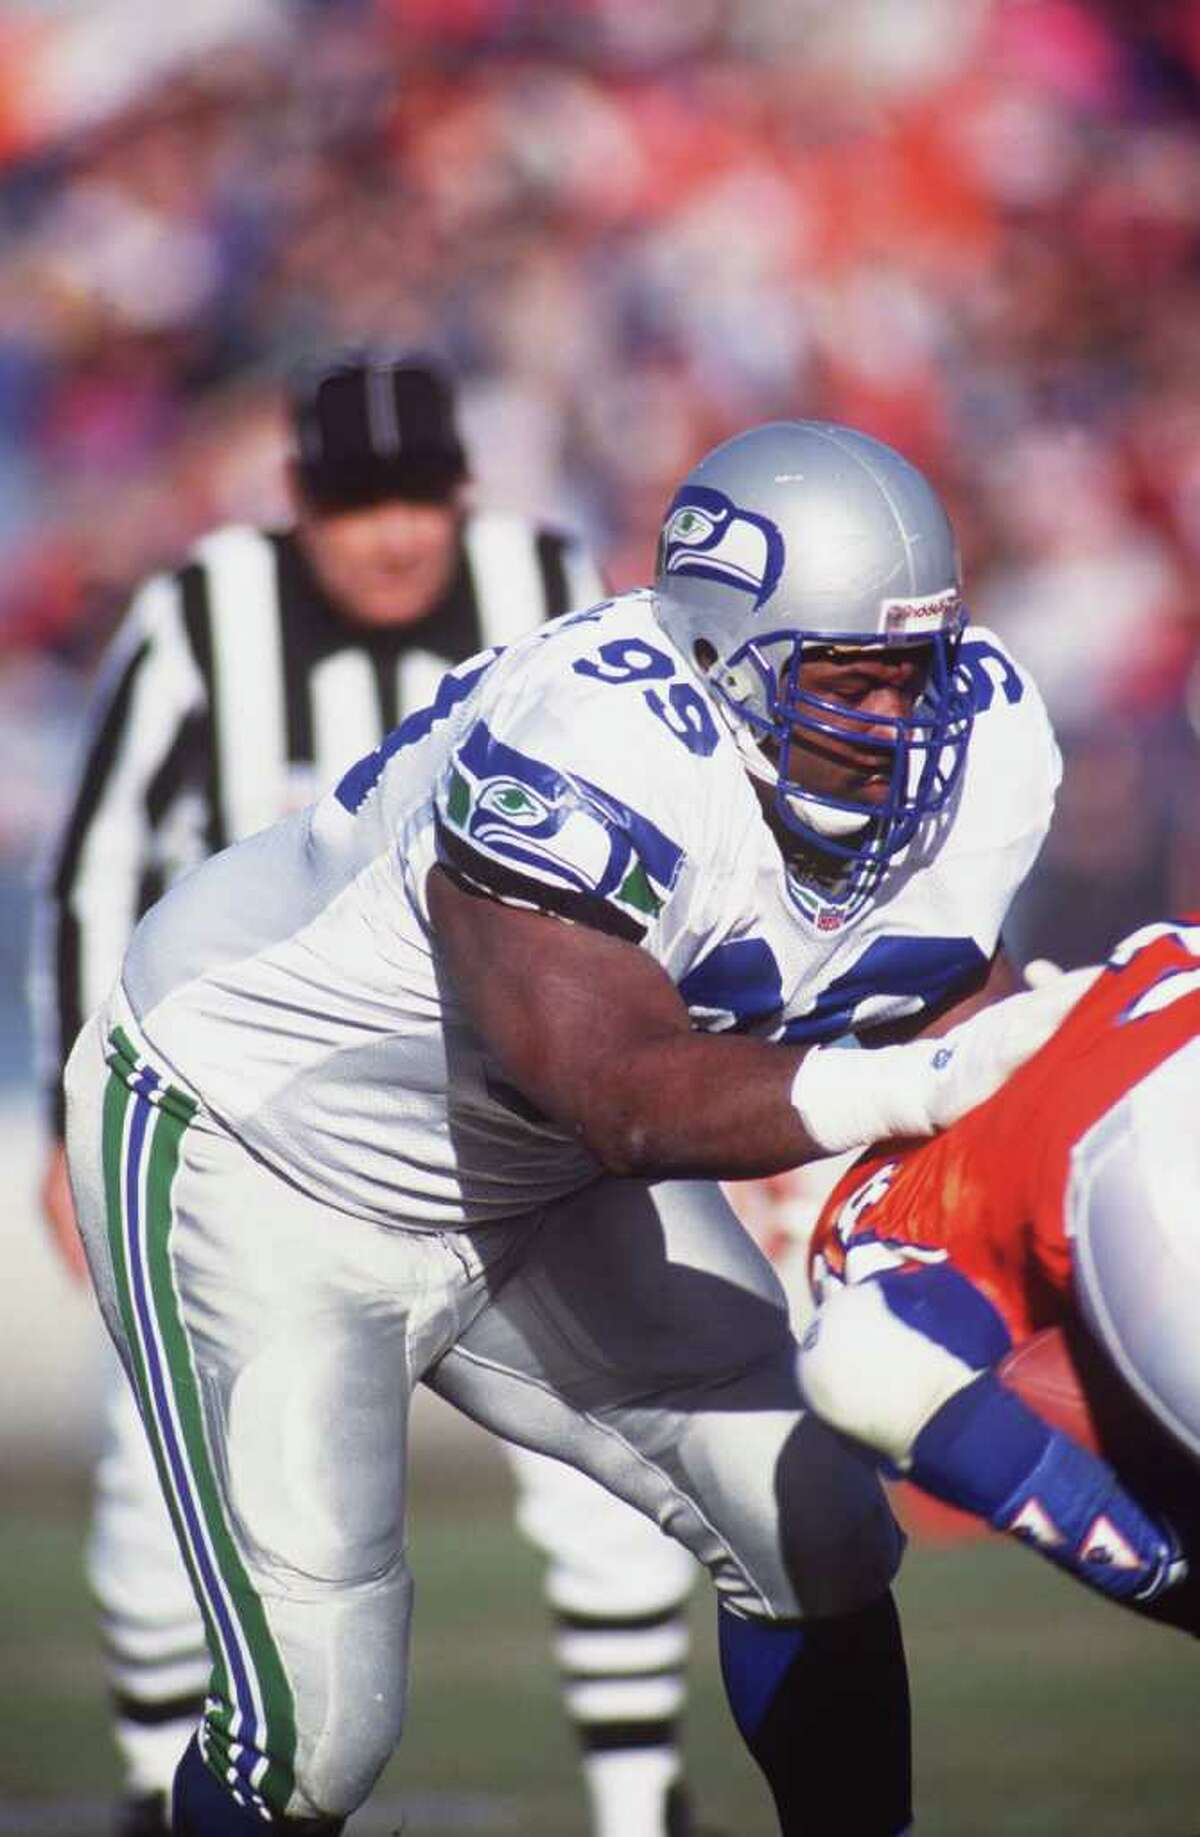 Seattle defensive tackle Cortez Kennedy tackles a Denver ball carrier during the Seahawks' 10-6 loss to the Broncos at Mile High Stadium in Denver on Dec. 20, 1992.